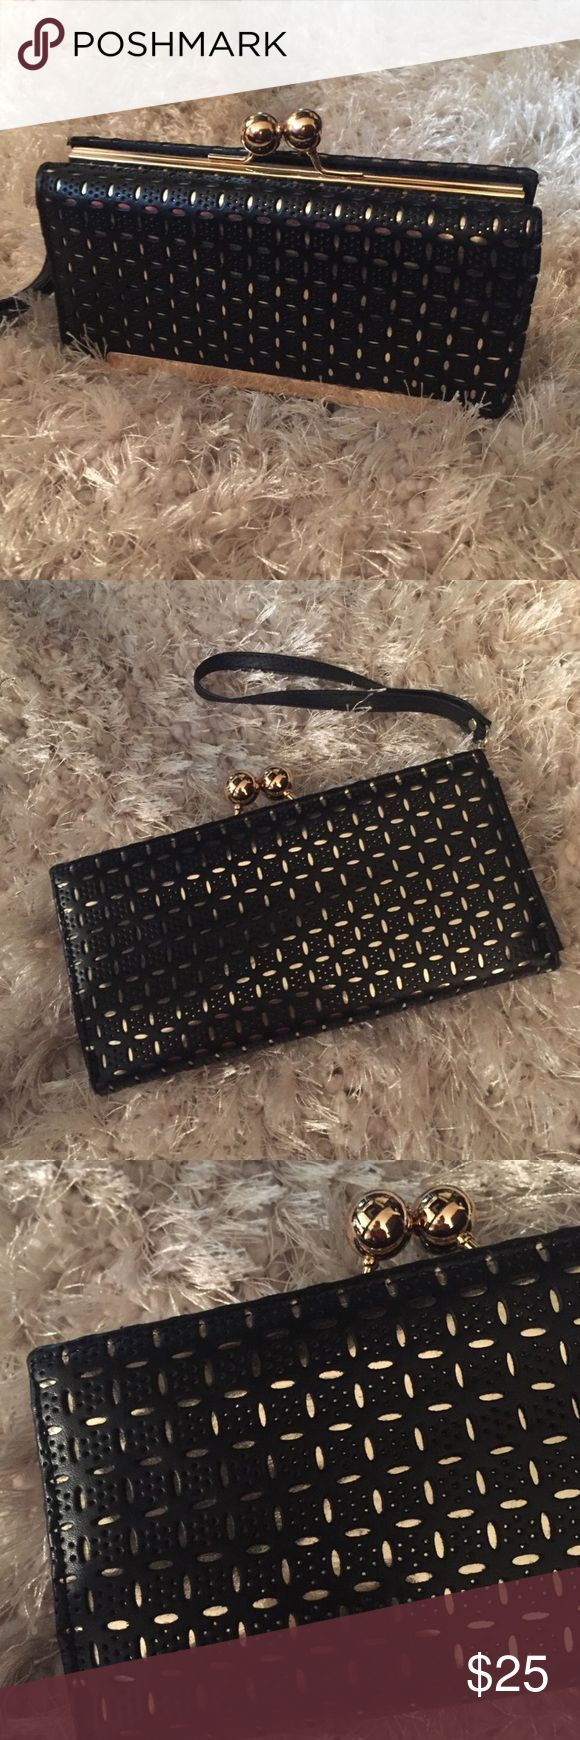 Gorgeous Black and Gold Clutch ✨ Gorgeous Black and Gold Wallet Clutch ✨ Bags Clutches & Wristlets